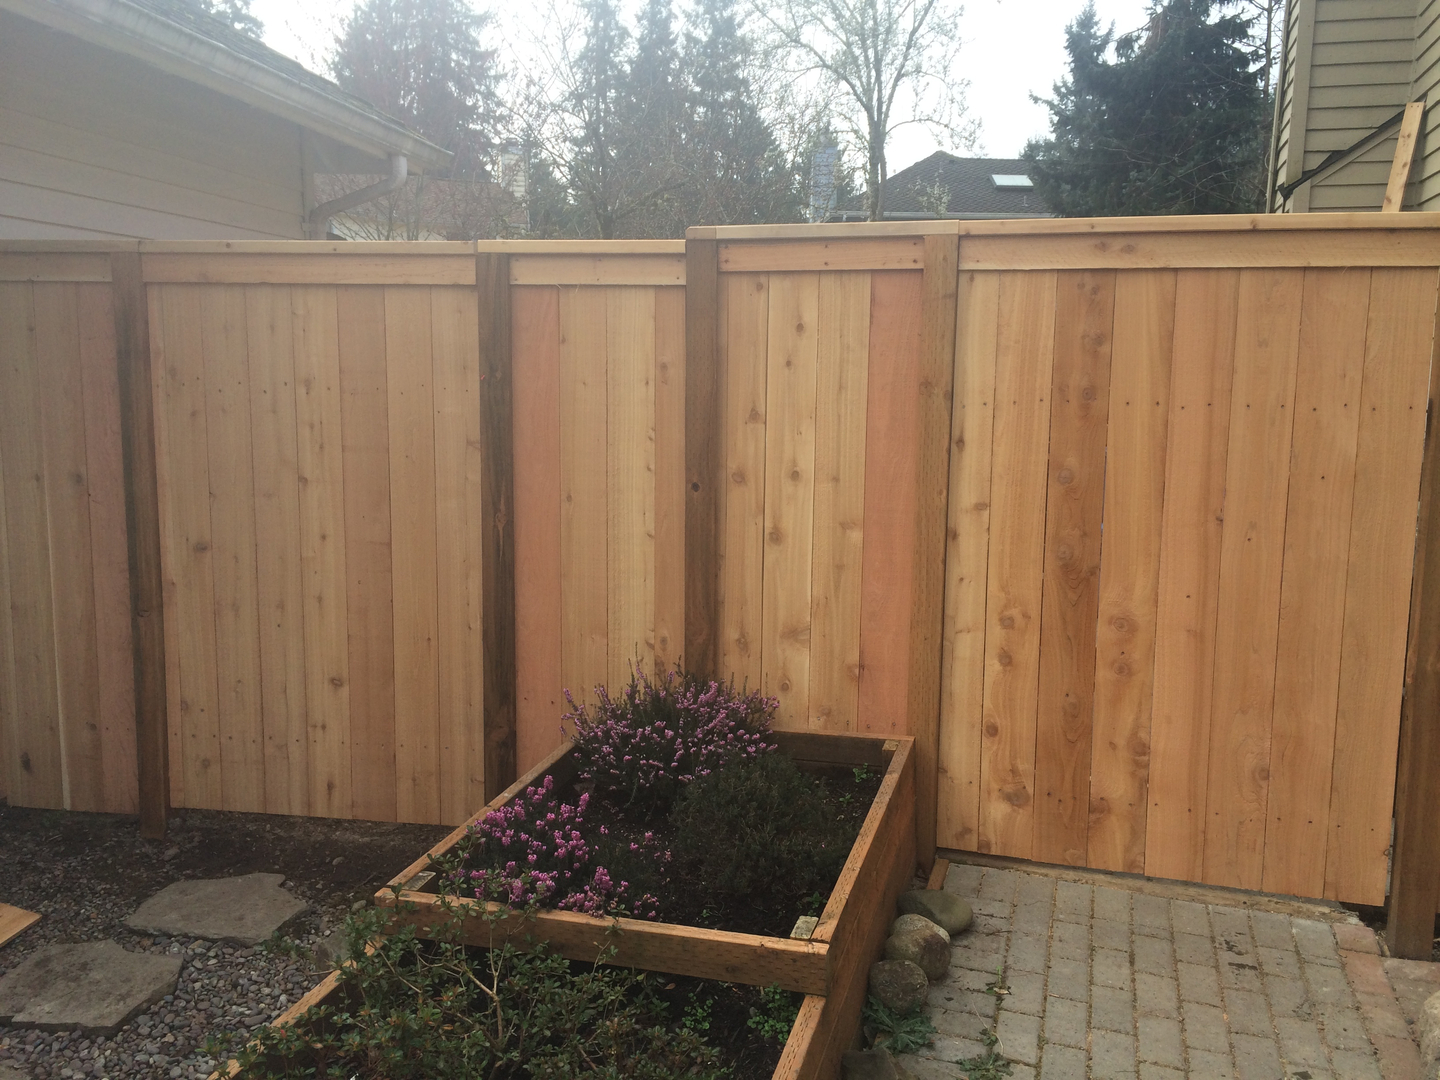 Kent fence company wood fence chain link fence fence kent fence company wood fence chain link fence fence contractor quality fences installed all american fencing baanklon Images